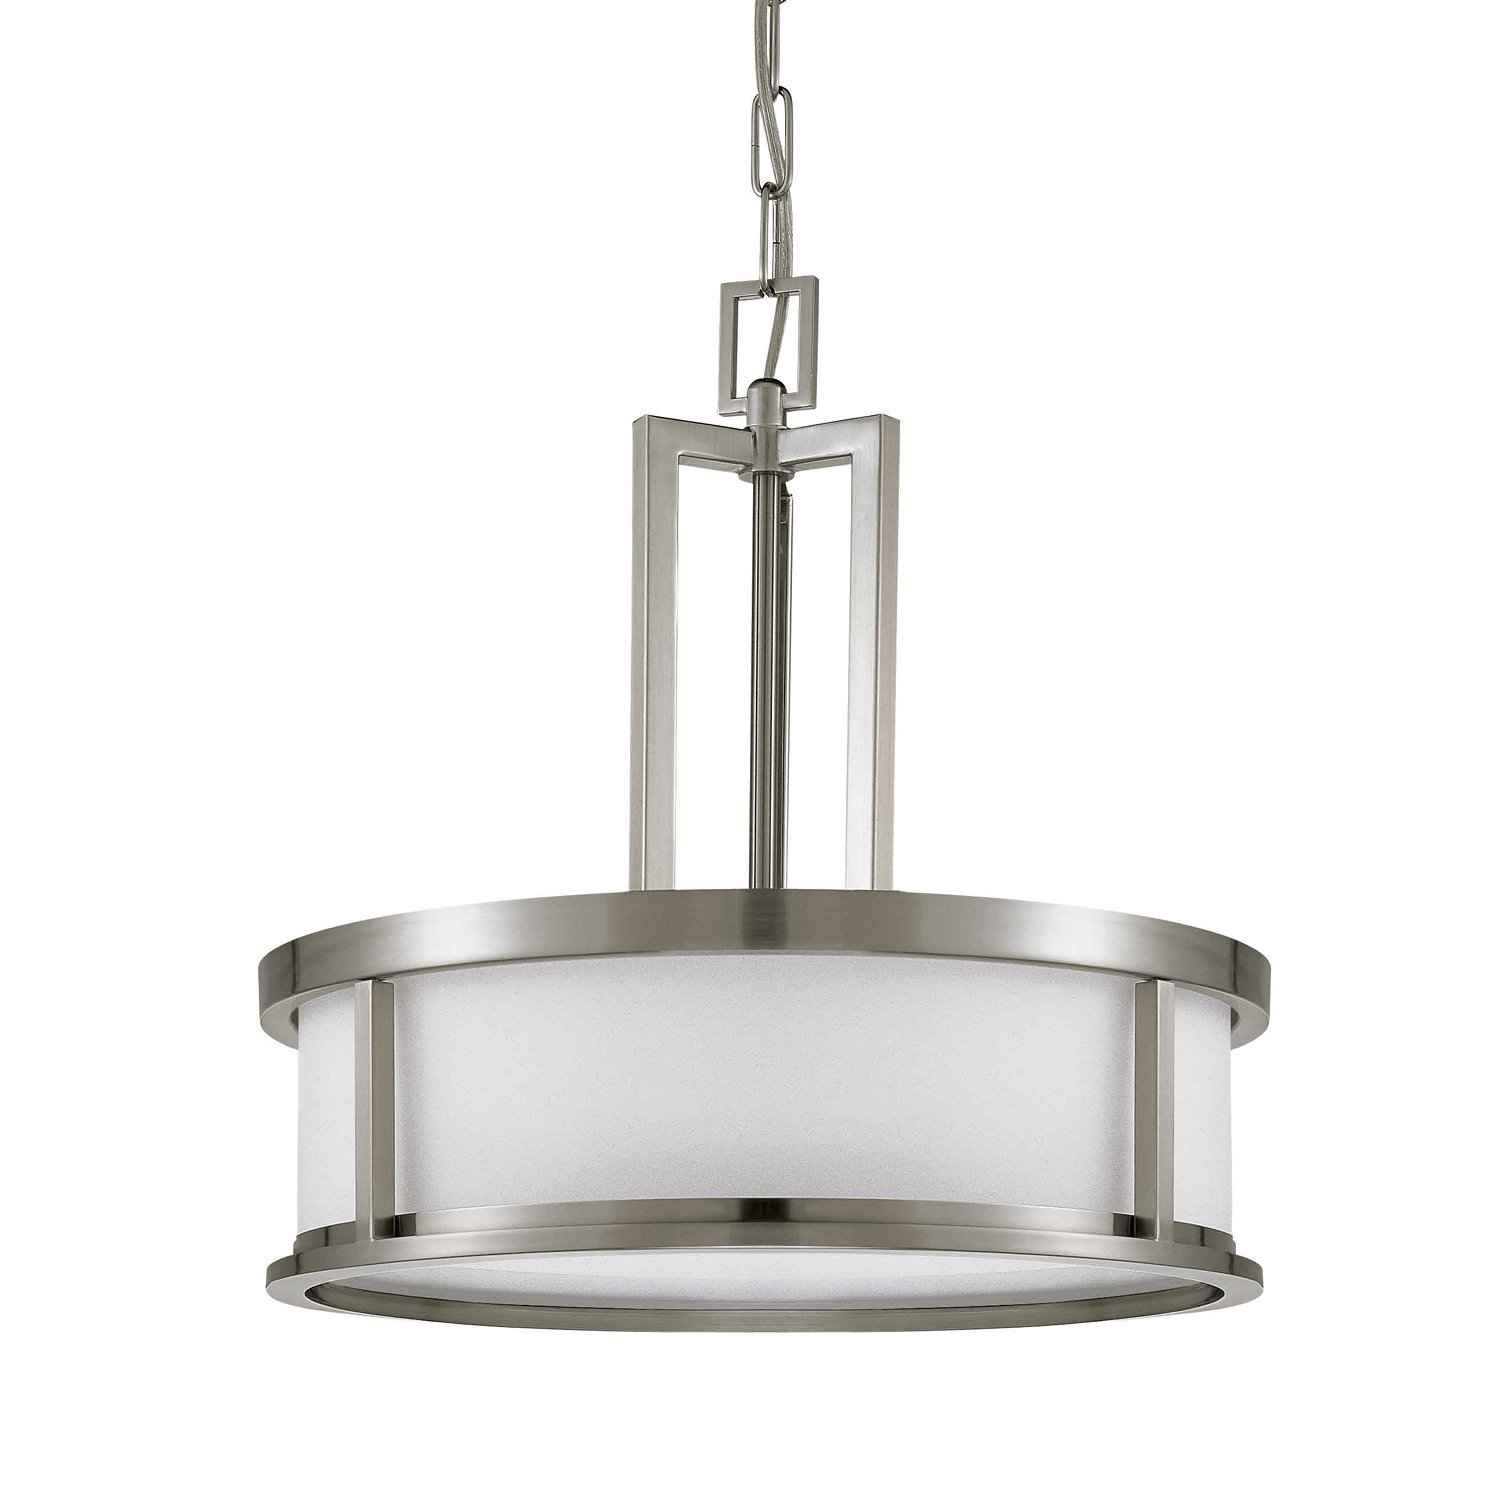 Nuvo Cheap Large Pendant Lights with 4 Light